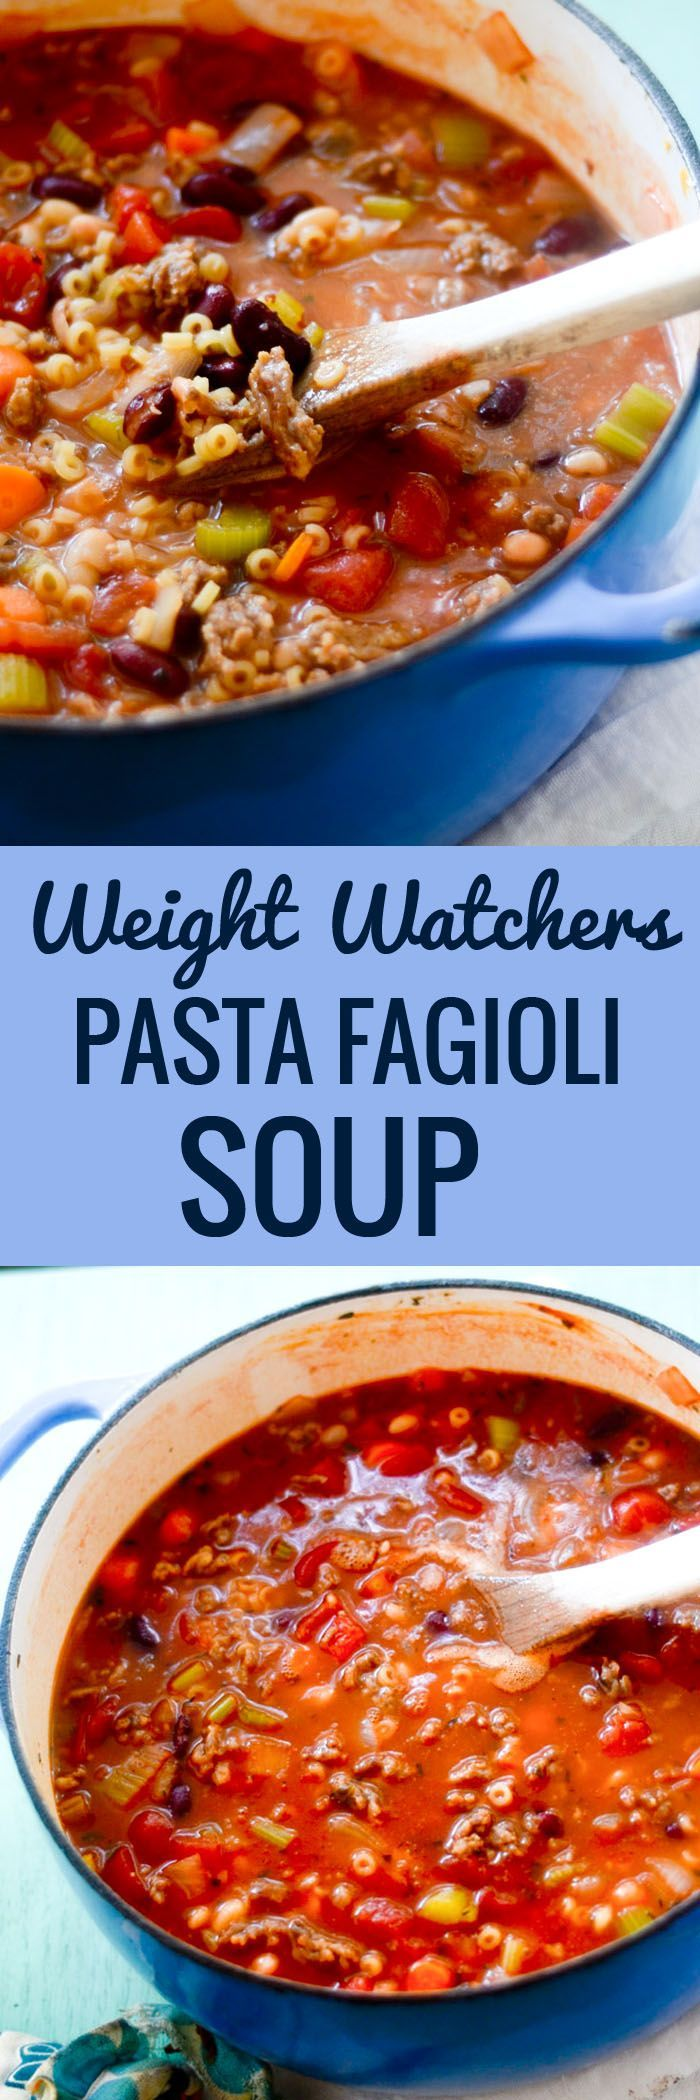 Weight Watchers Pasta Fagioli Soup - Recipe Diaries